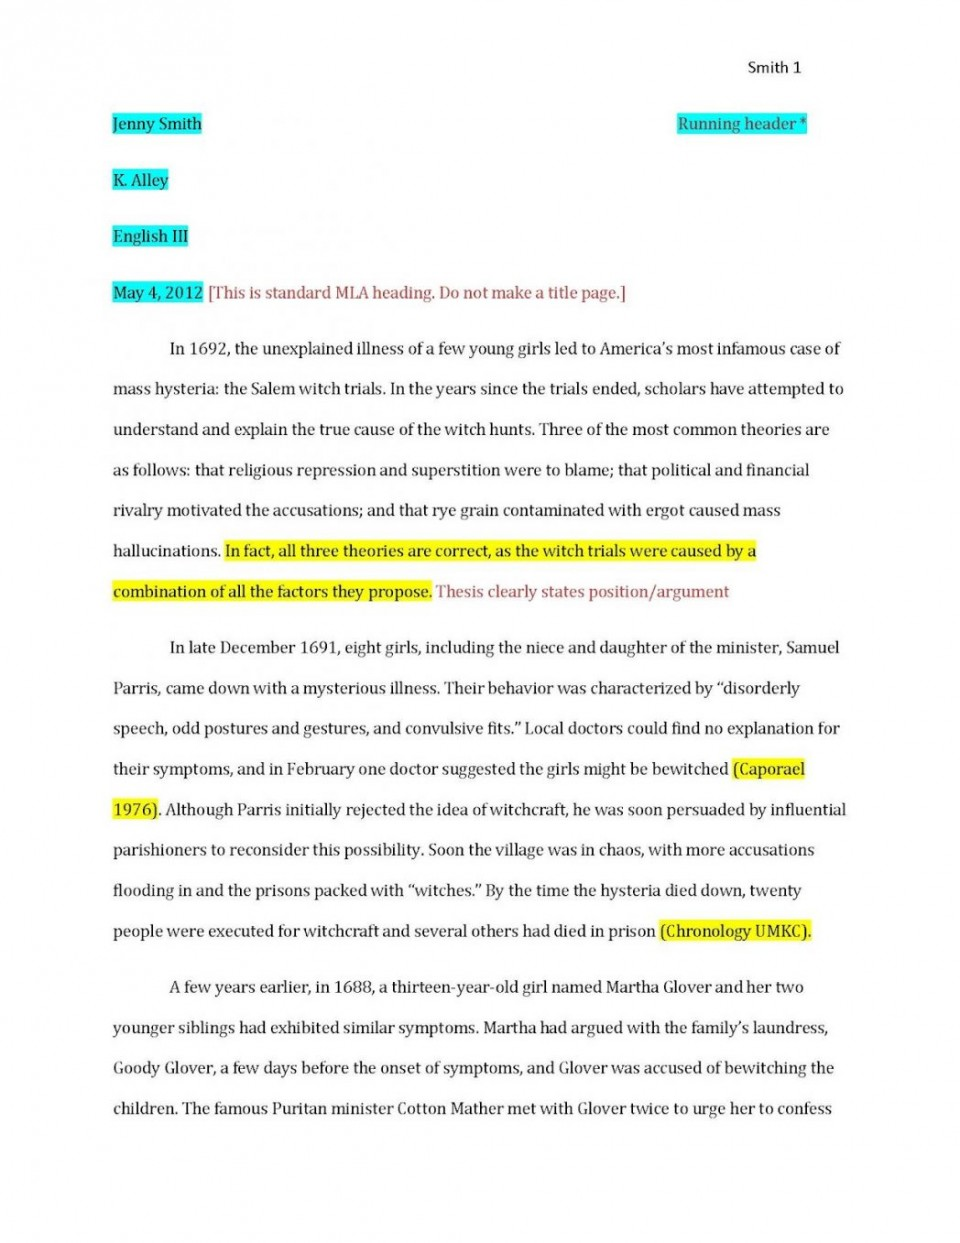 002 Mla Format Essay Generator Author Date References System Ready Set Automaticpaper P 1048x1357 Wondrous Funny Title Paper Software Download 960